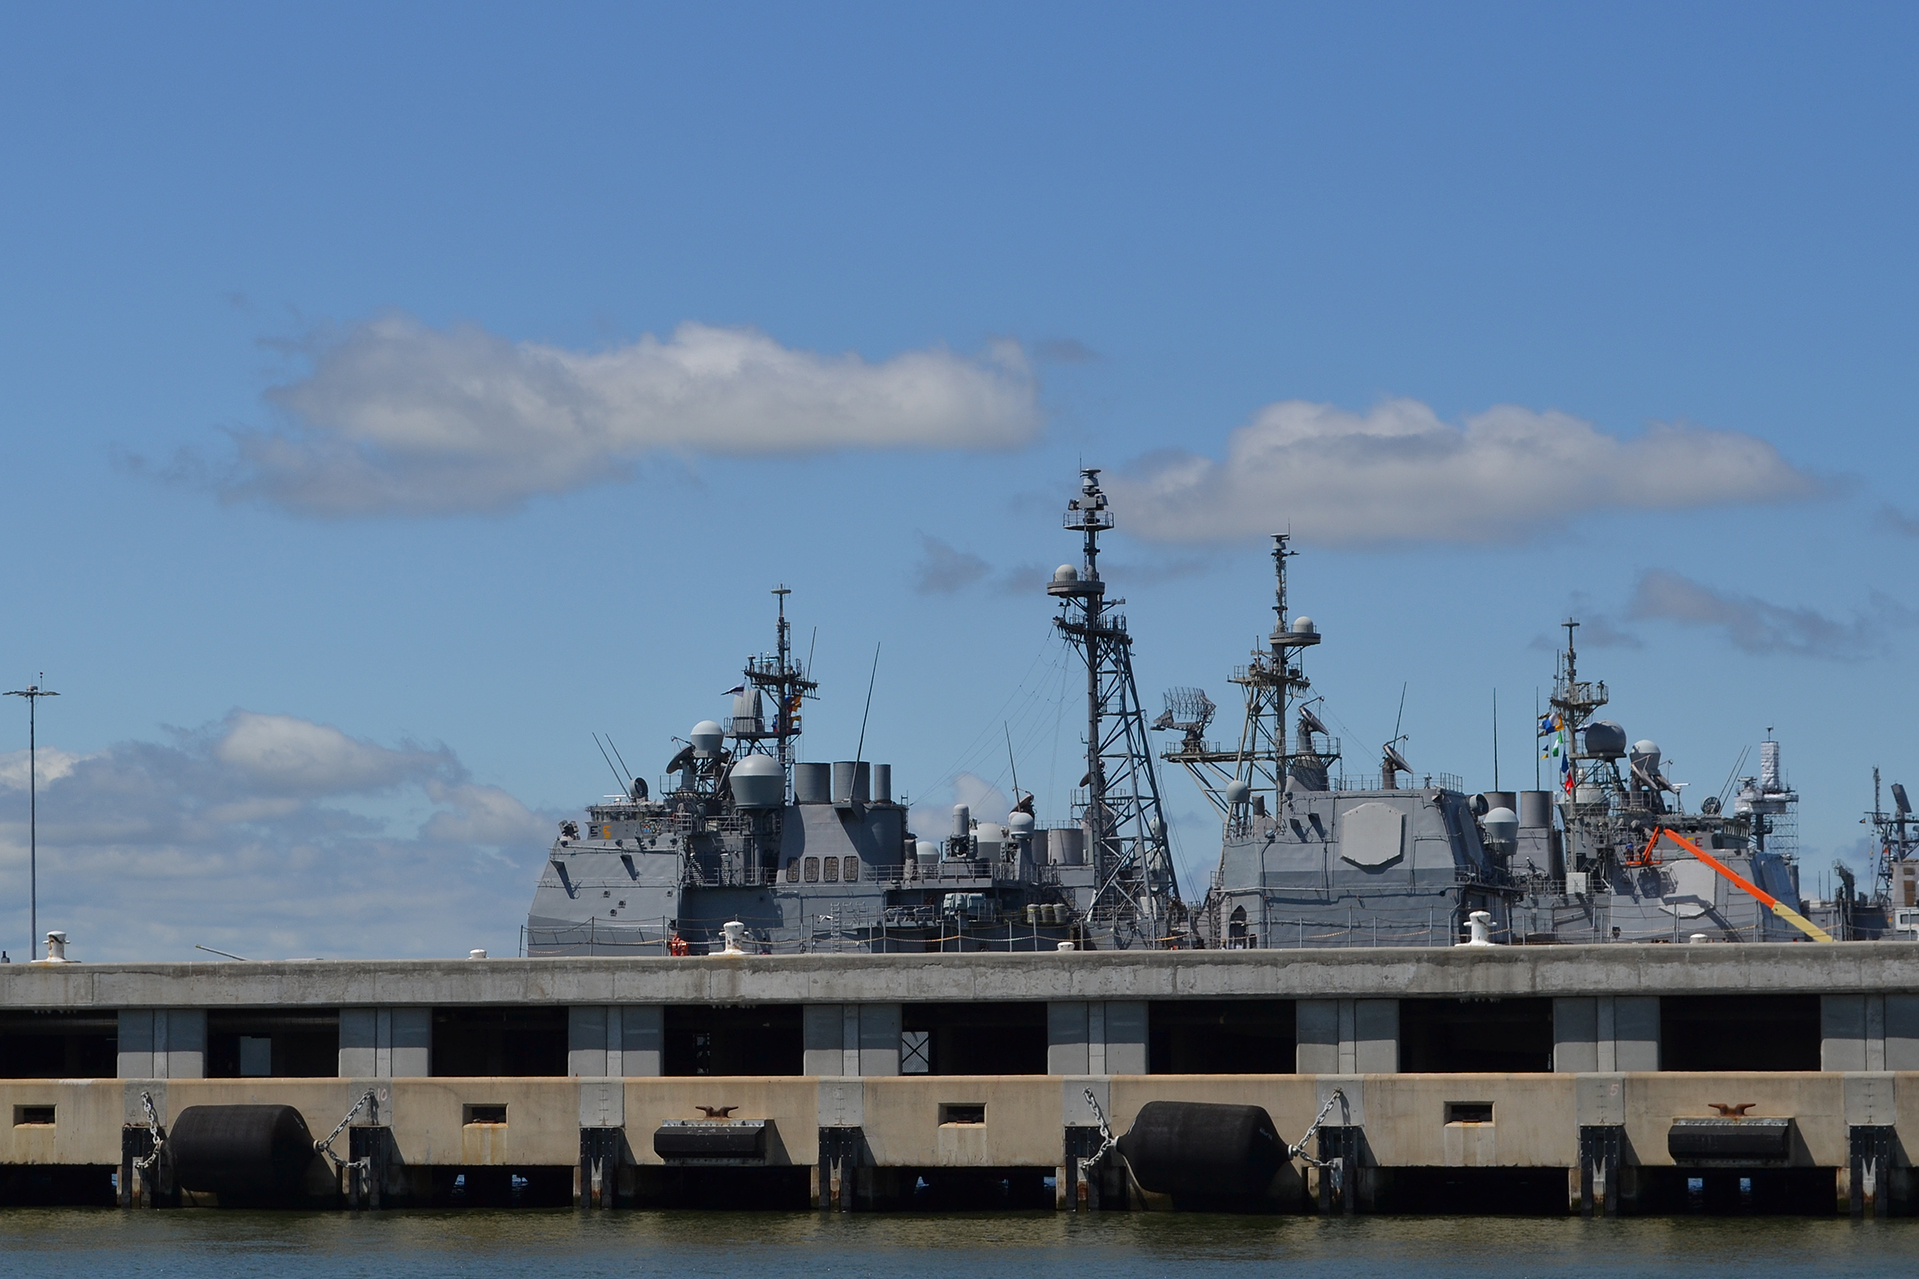 The Navy has added a second deck to some piers at Naval Base Norfolk to accommodate higher water levels and expedite the handling of cargo. (Lynne Lewis for Bates College)